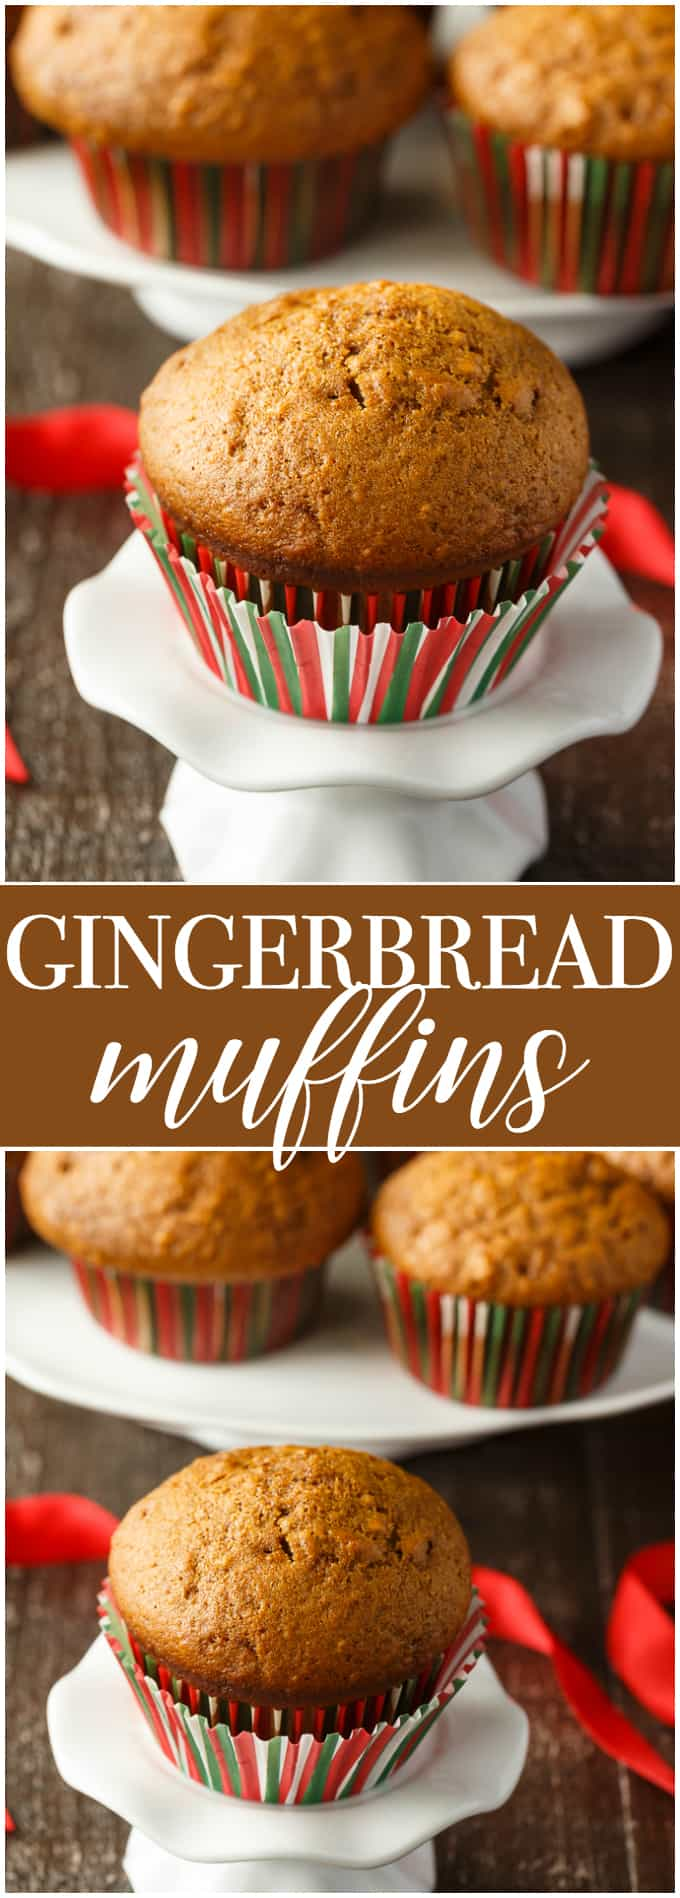 Gingerbread Muffins - Have a festive muffin for breakfast! These easy holiday muffins are sweet and spicy, perfect with coffee.